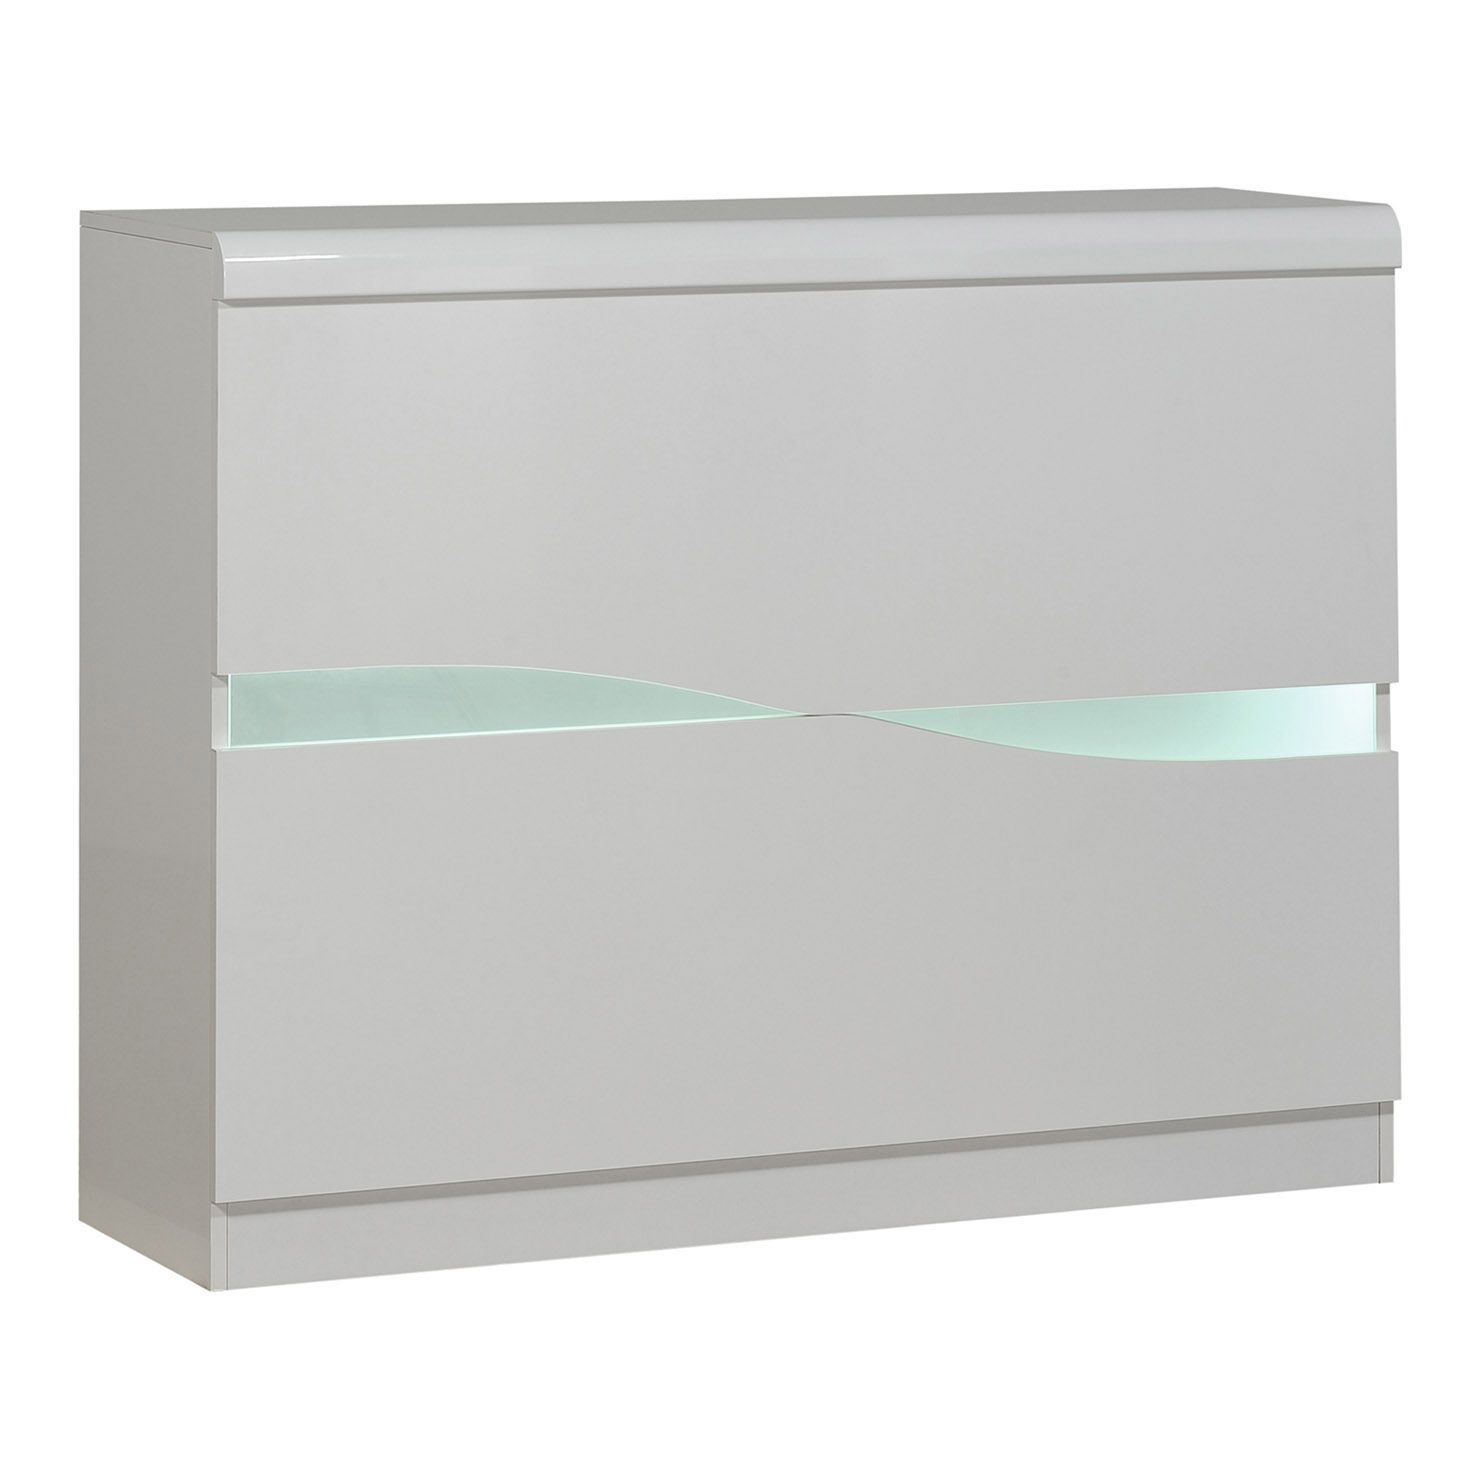 Ovio Bar Unit With Led Lights White Bar Unit Bar And Lights # Meuble Ovio Blanc